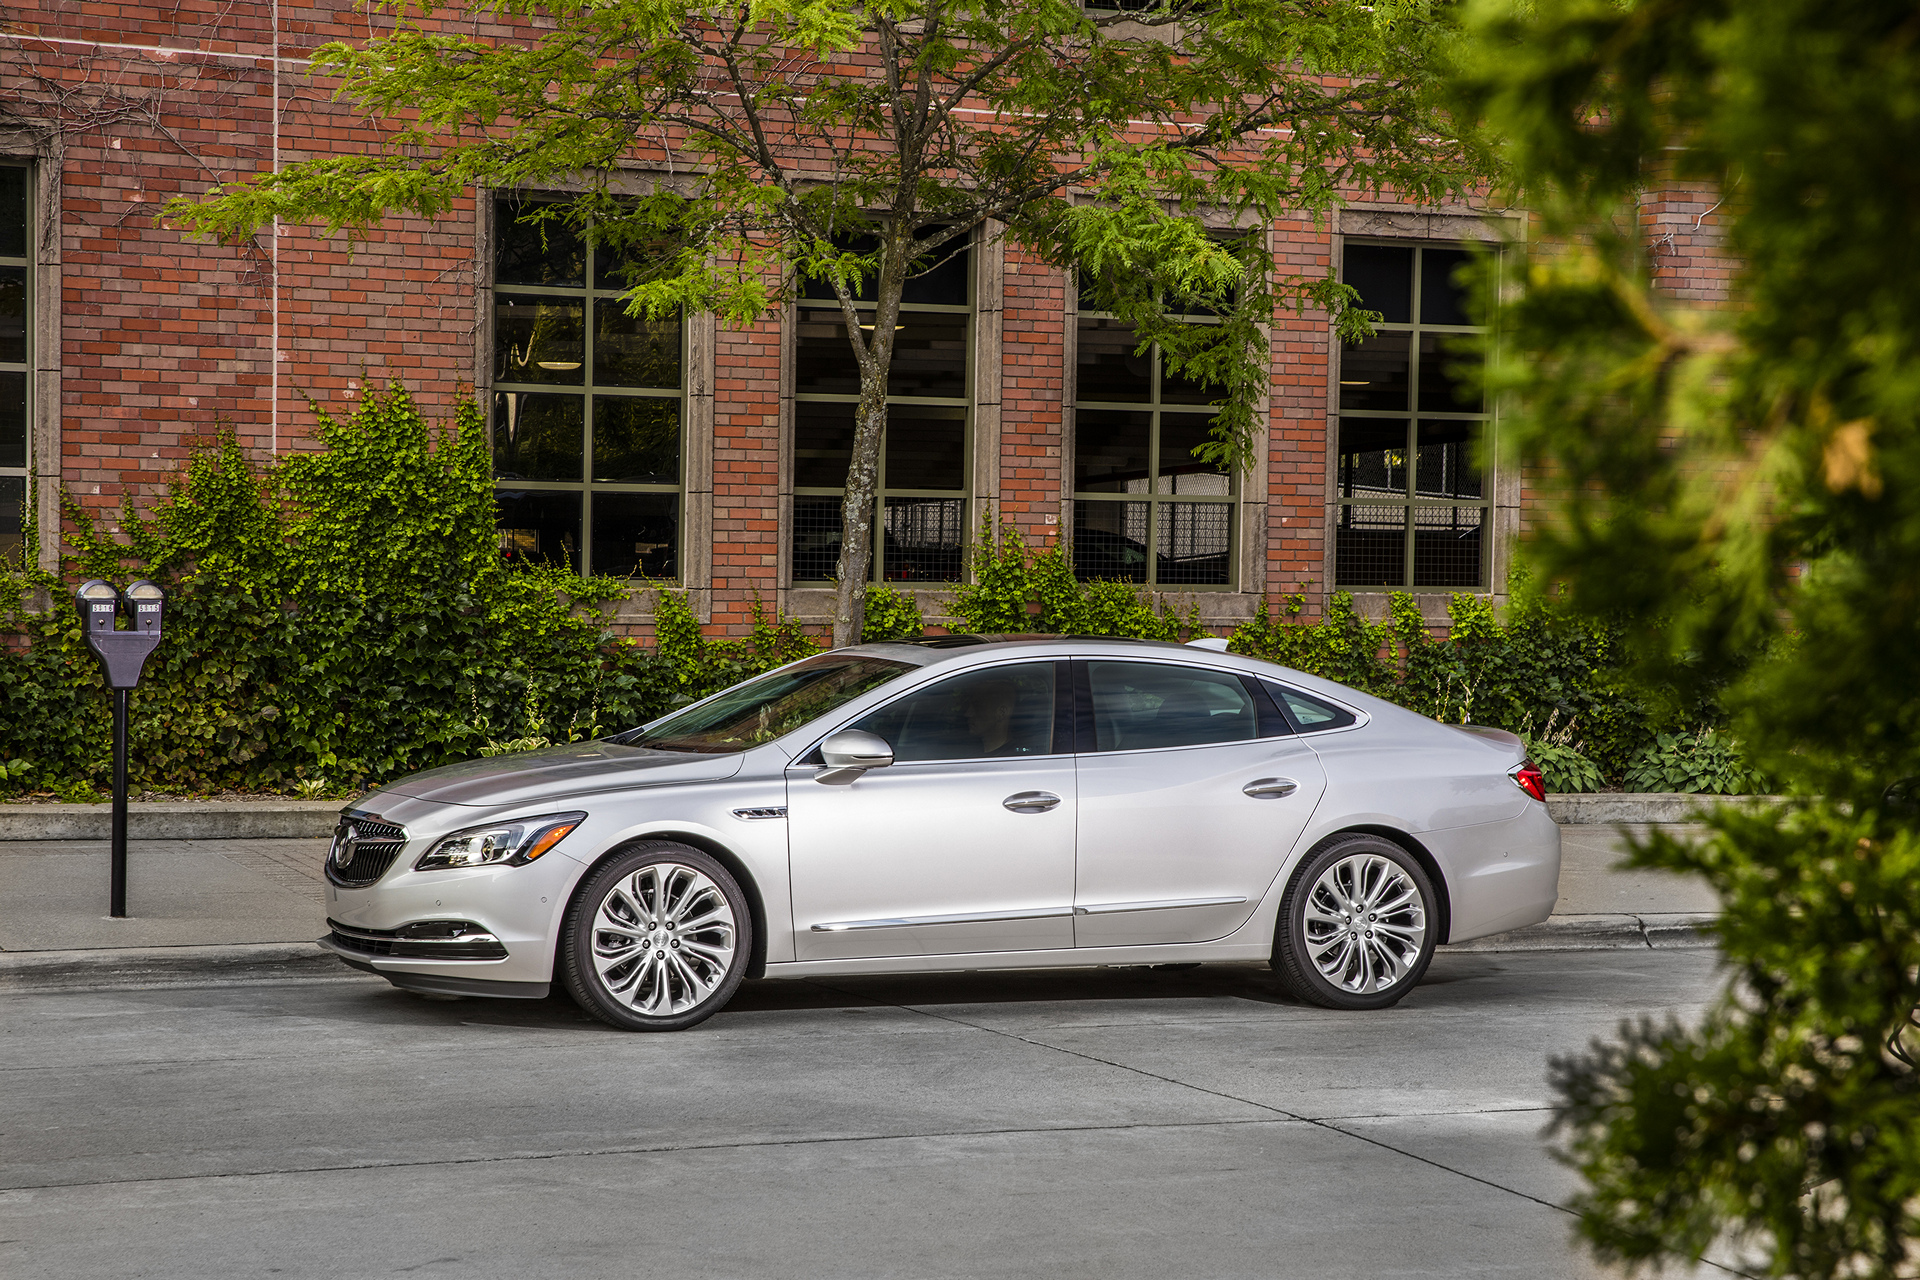 2017 Buick LaCrosse © General Motors